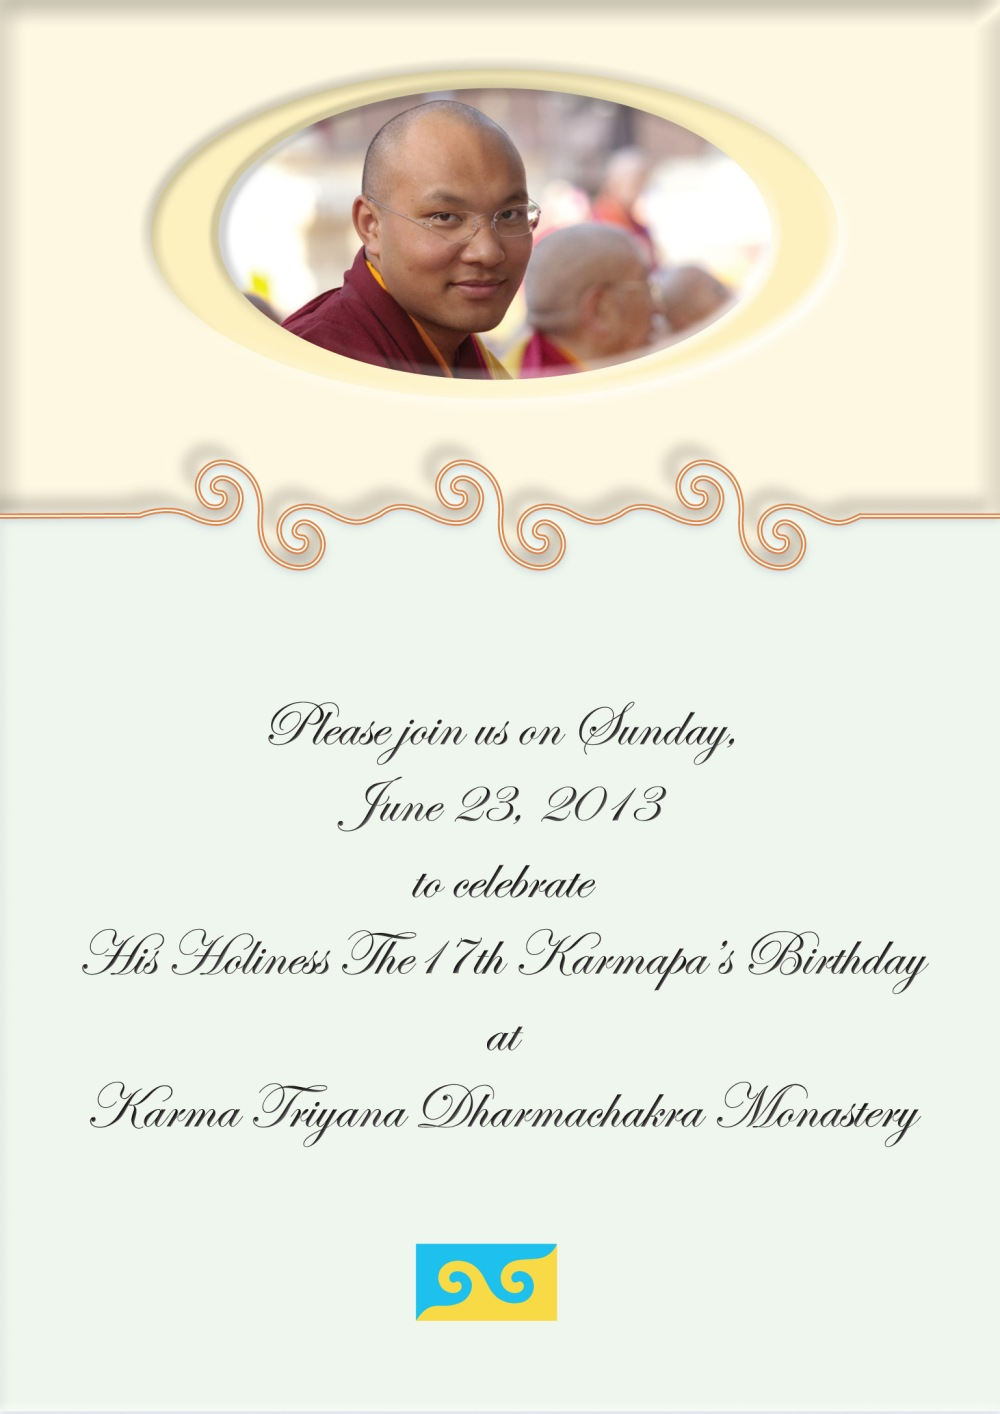 KTD 2013 Karmapa BD party invitation-1